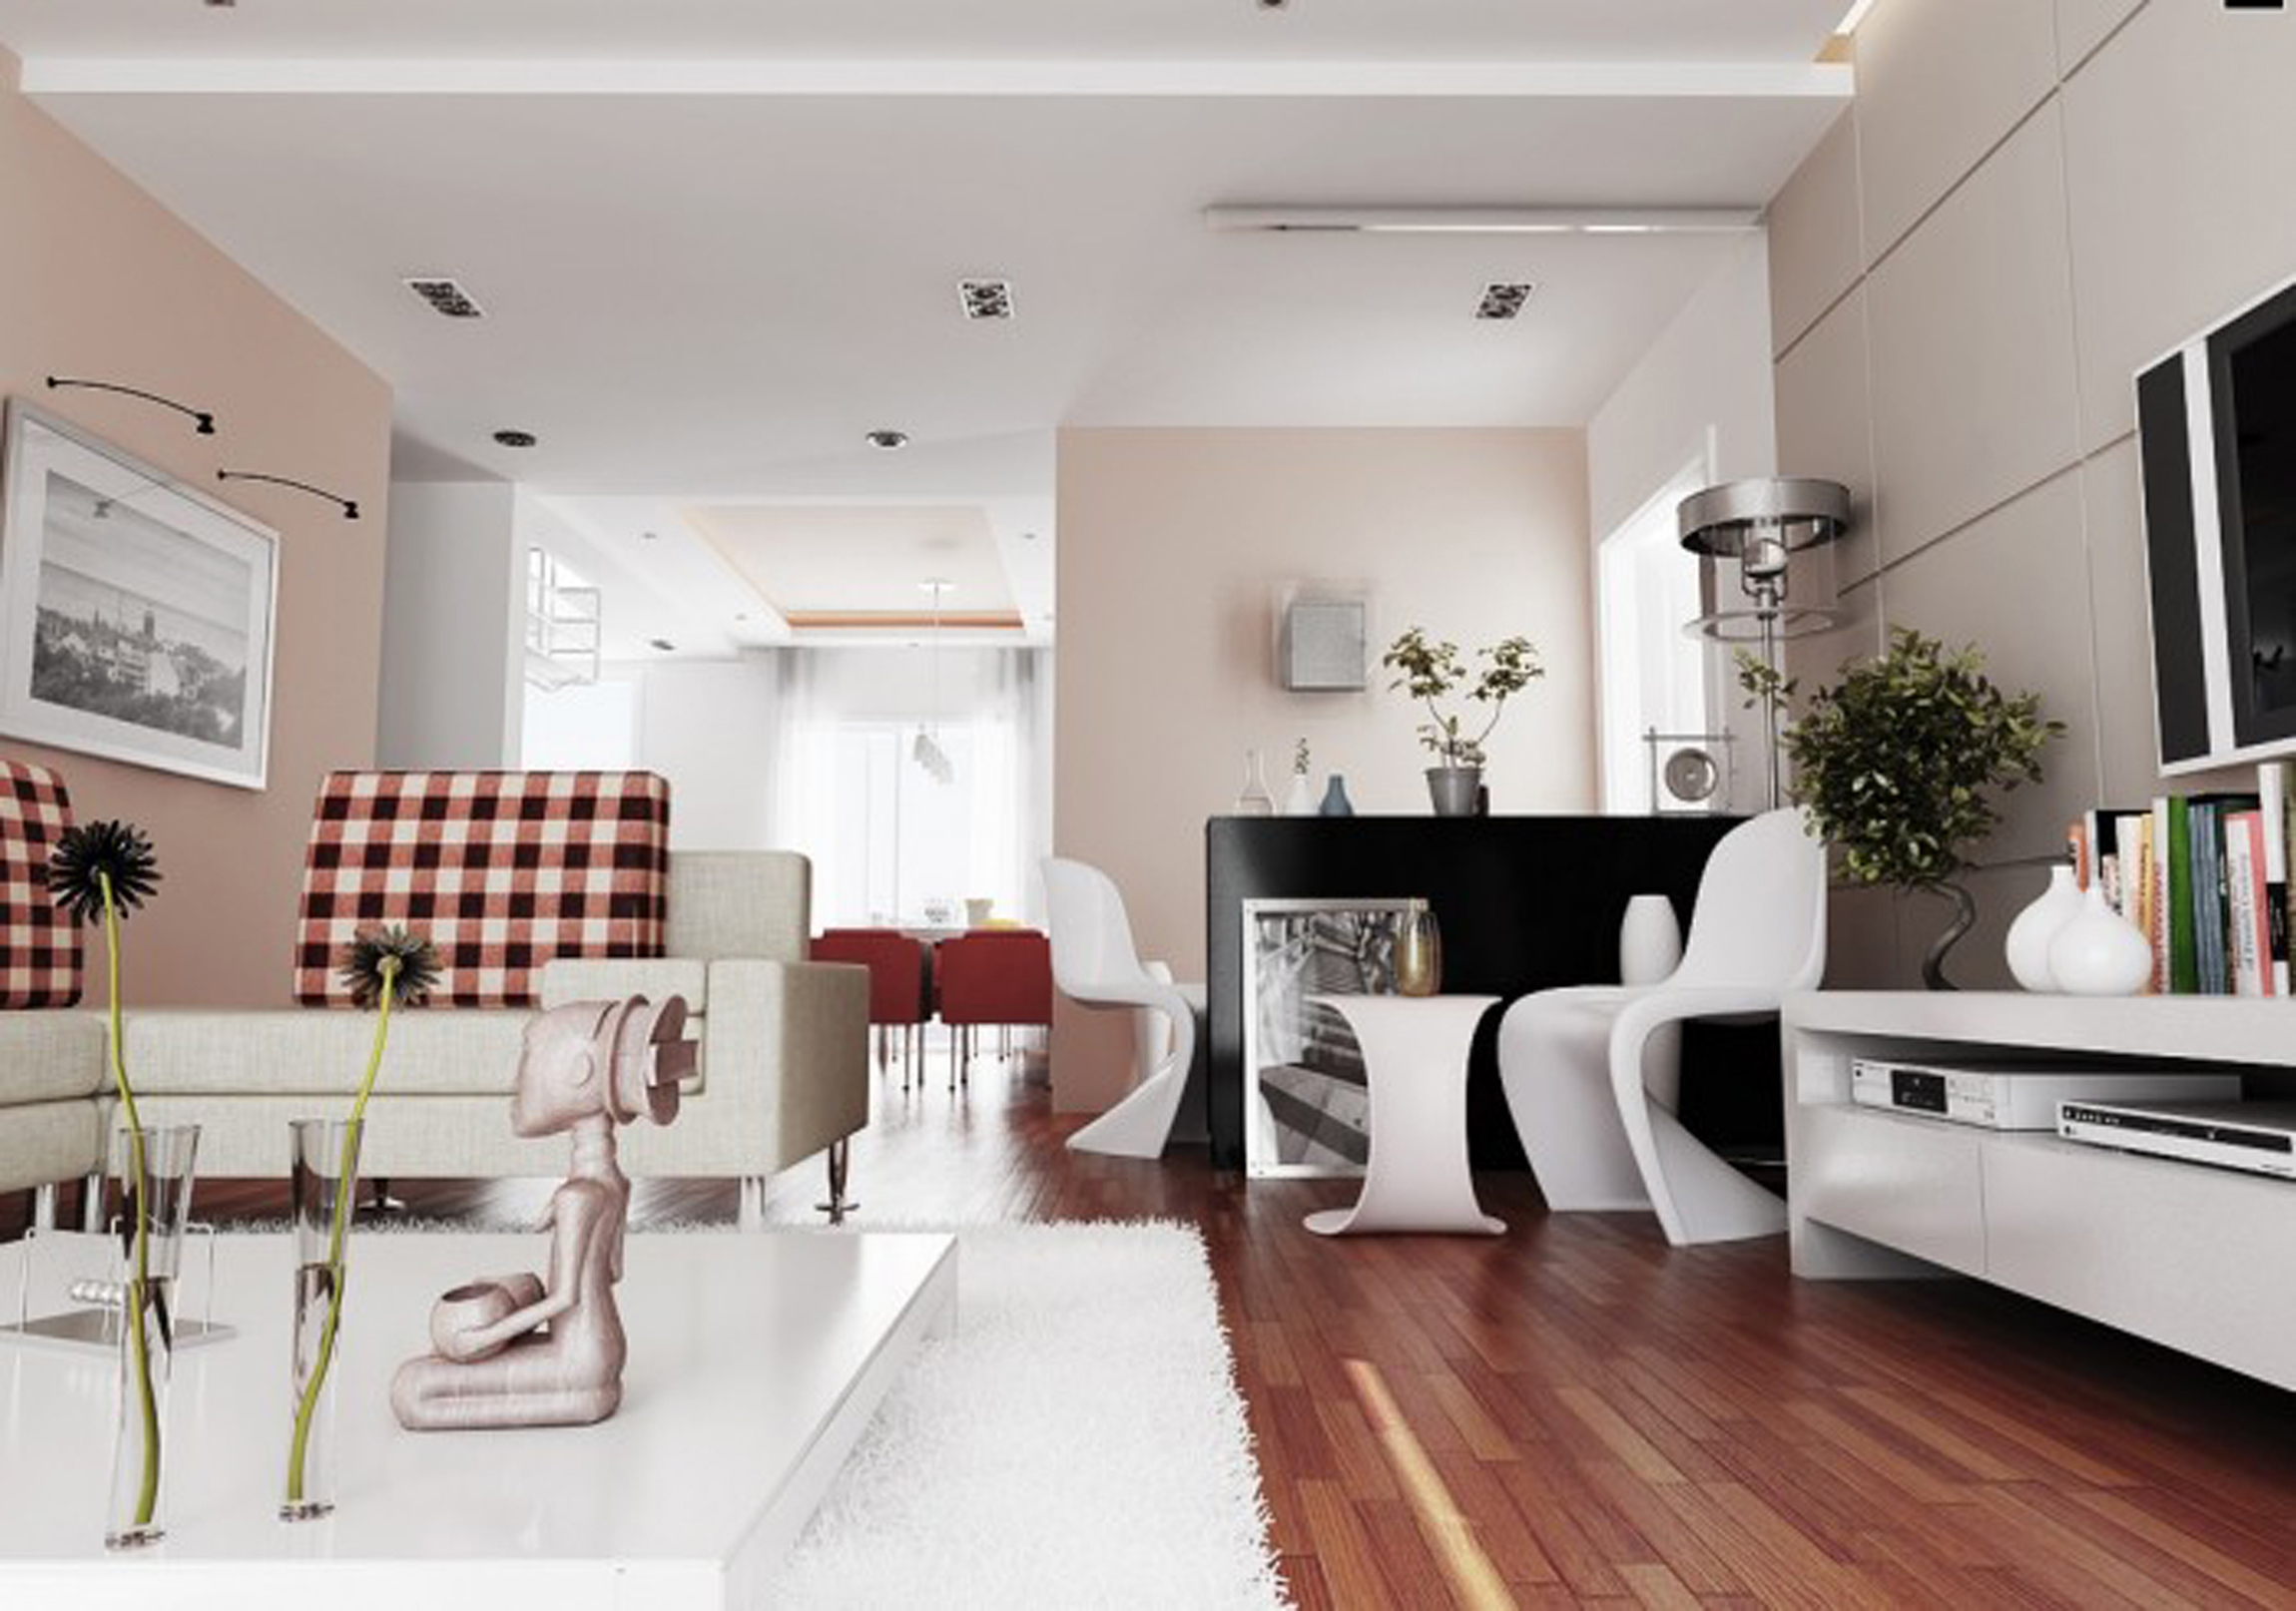 Modern Living Room Decoration Wonderful Human Scuplture With Fancy White Seat On Parquet Floor Awesome Modern Living Rooms Design Ideas (Image 14 of 30)